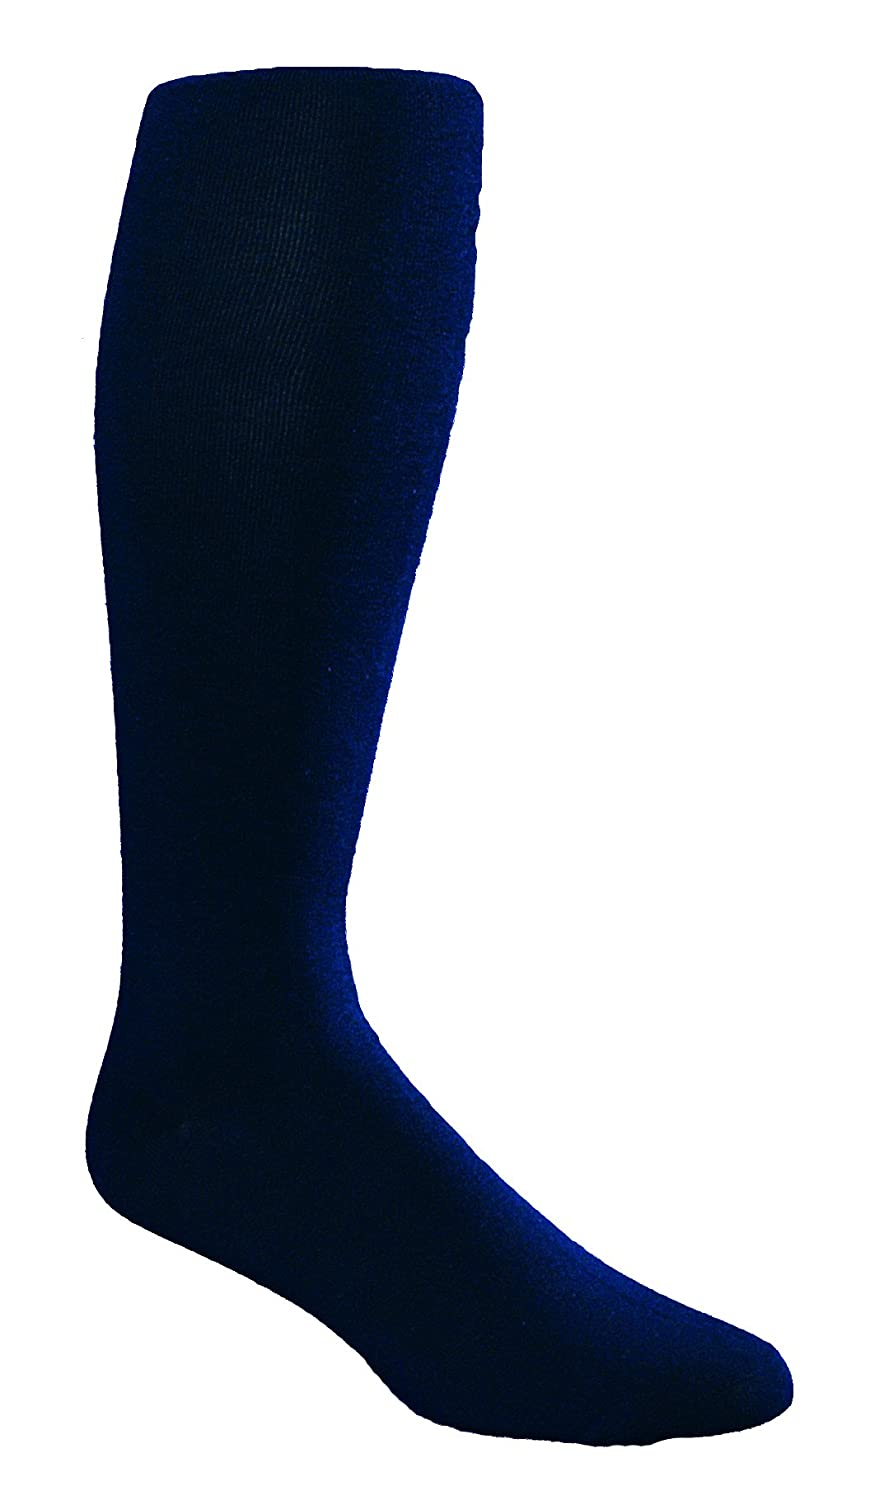 e04be7b82 The Highlands Argyle Women s Golf Sock Collection - Solid Navy